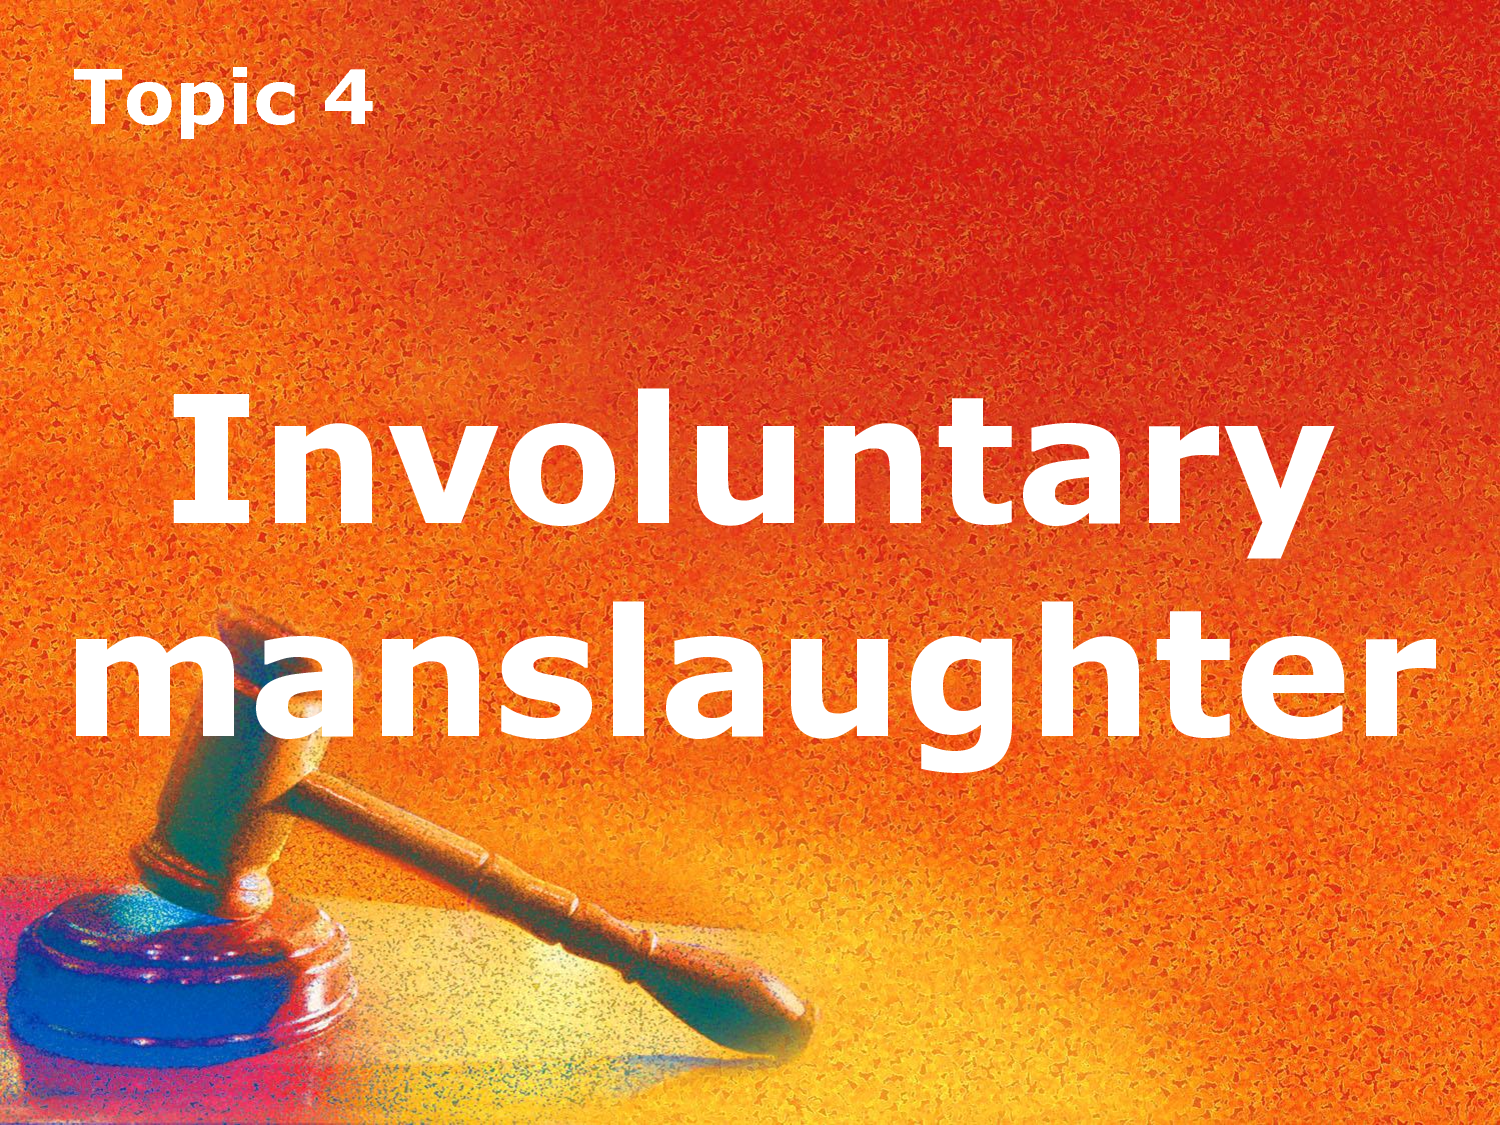 involuntary manslaughter problem question People at times have been confused with the difference between voluntary manslaughter and involuntary manslaughter but there is a substantial difference between the two that can help one to more thoroughly understand what the key difference is between the two.